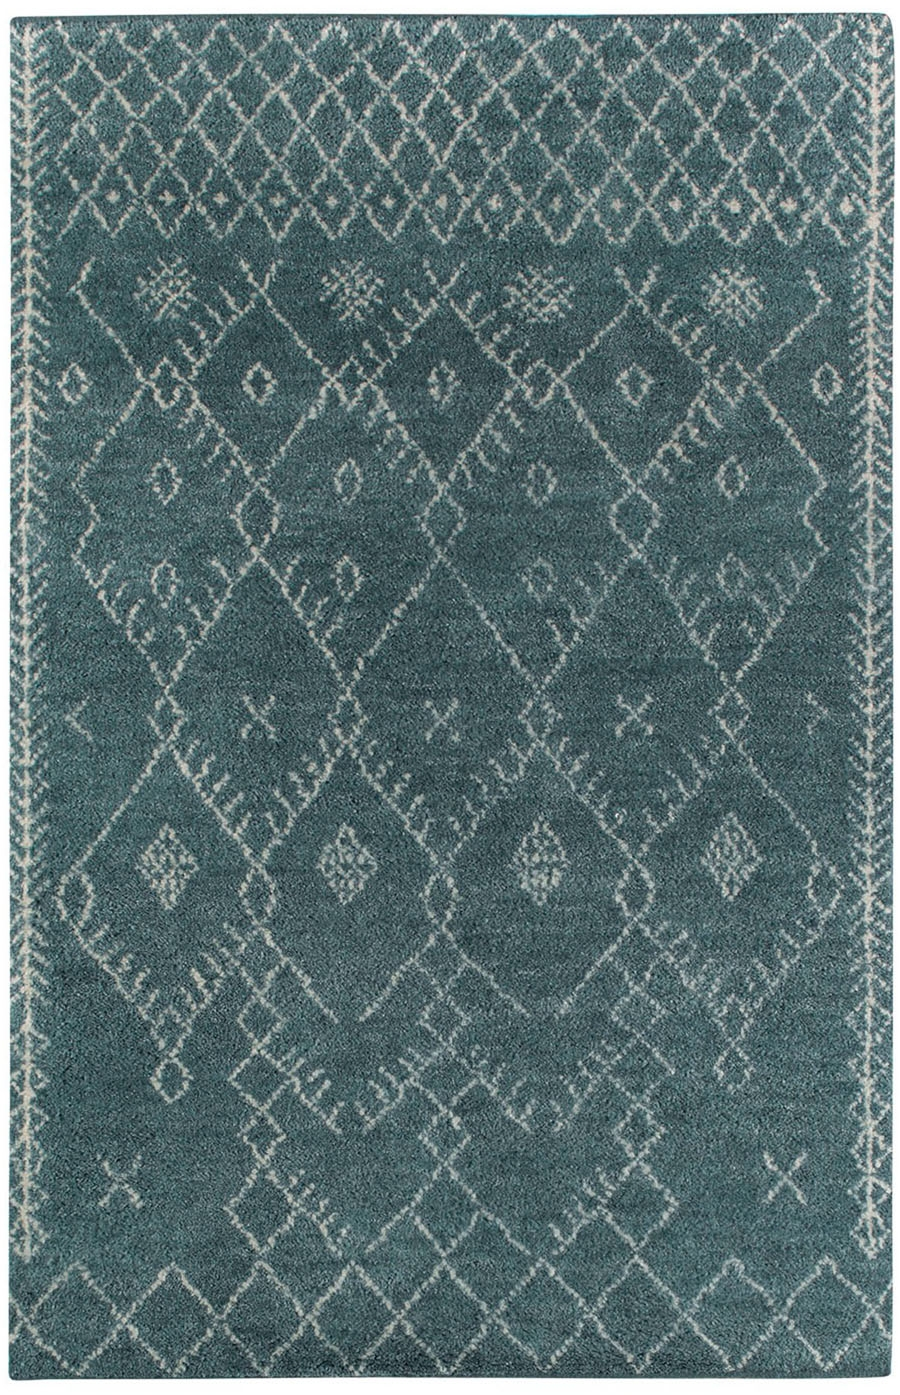 Capel Fortress Diamond 1924 444 Spa Rug